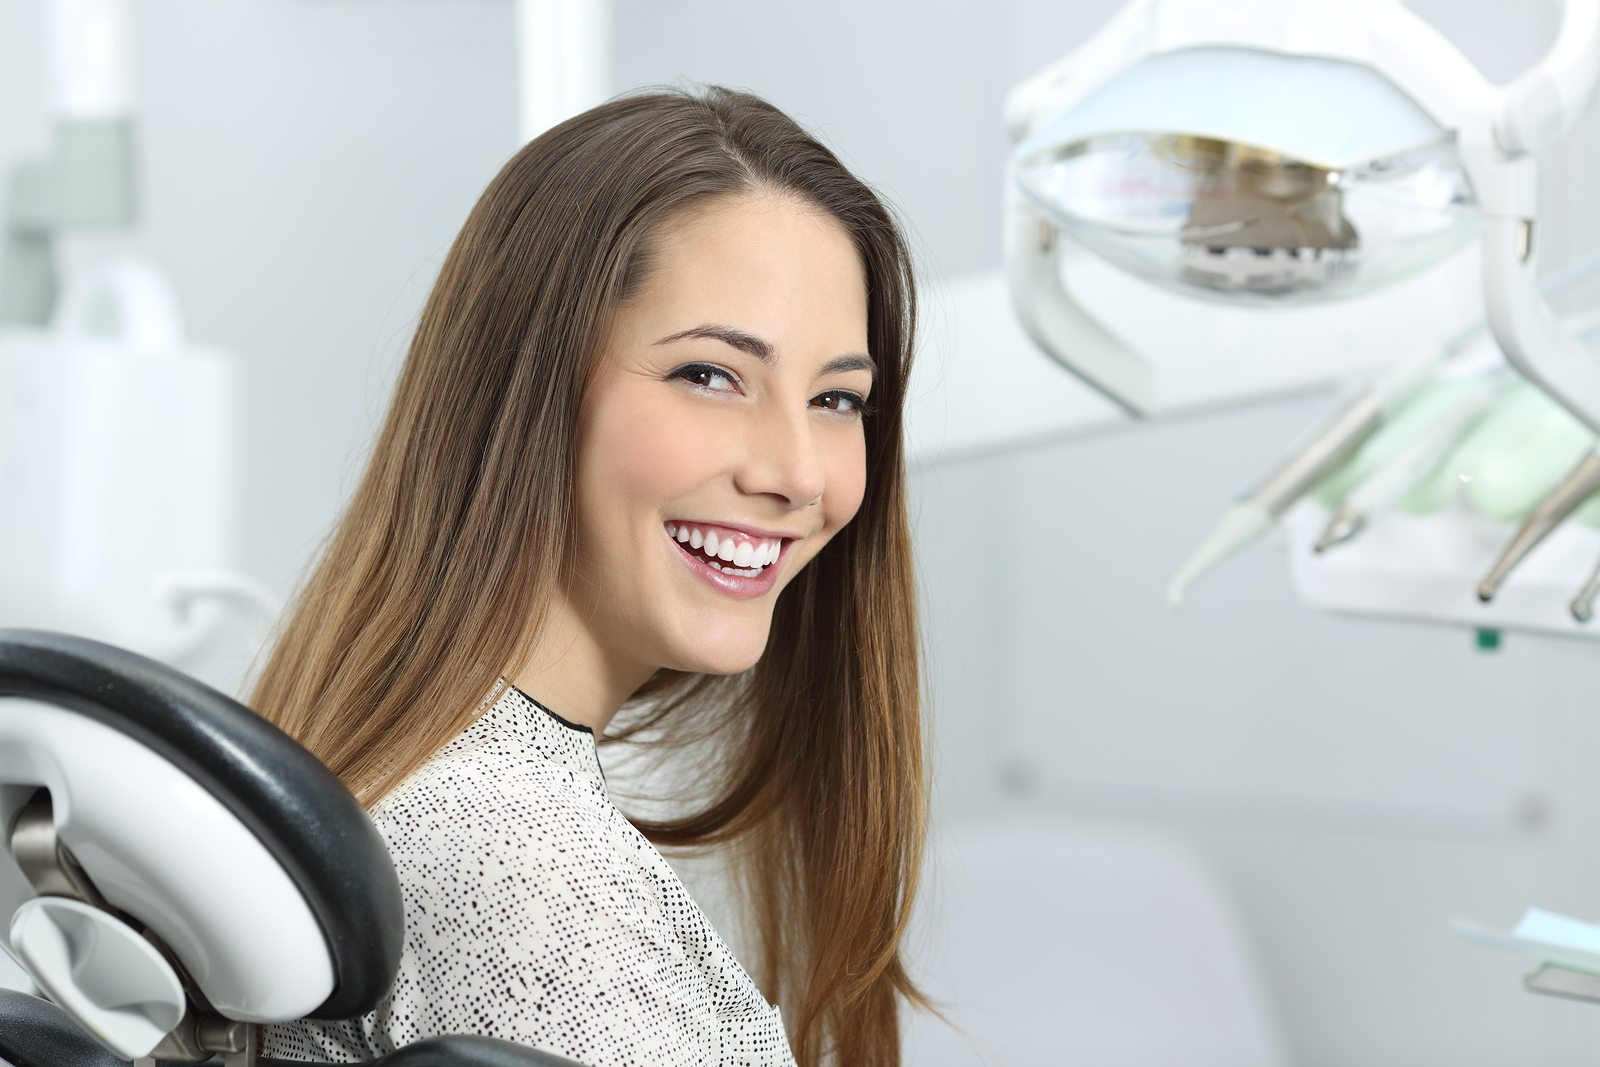 Satisfied dentist patient showing her perfect smile after treatment in a clinic box with medical equipment in the background